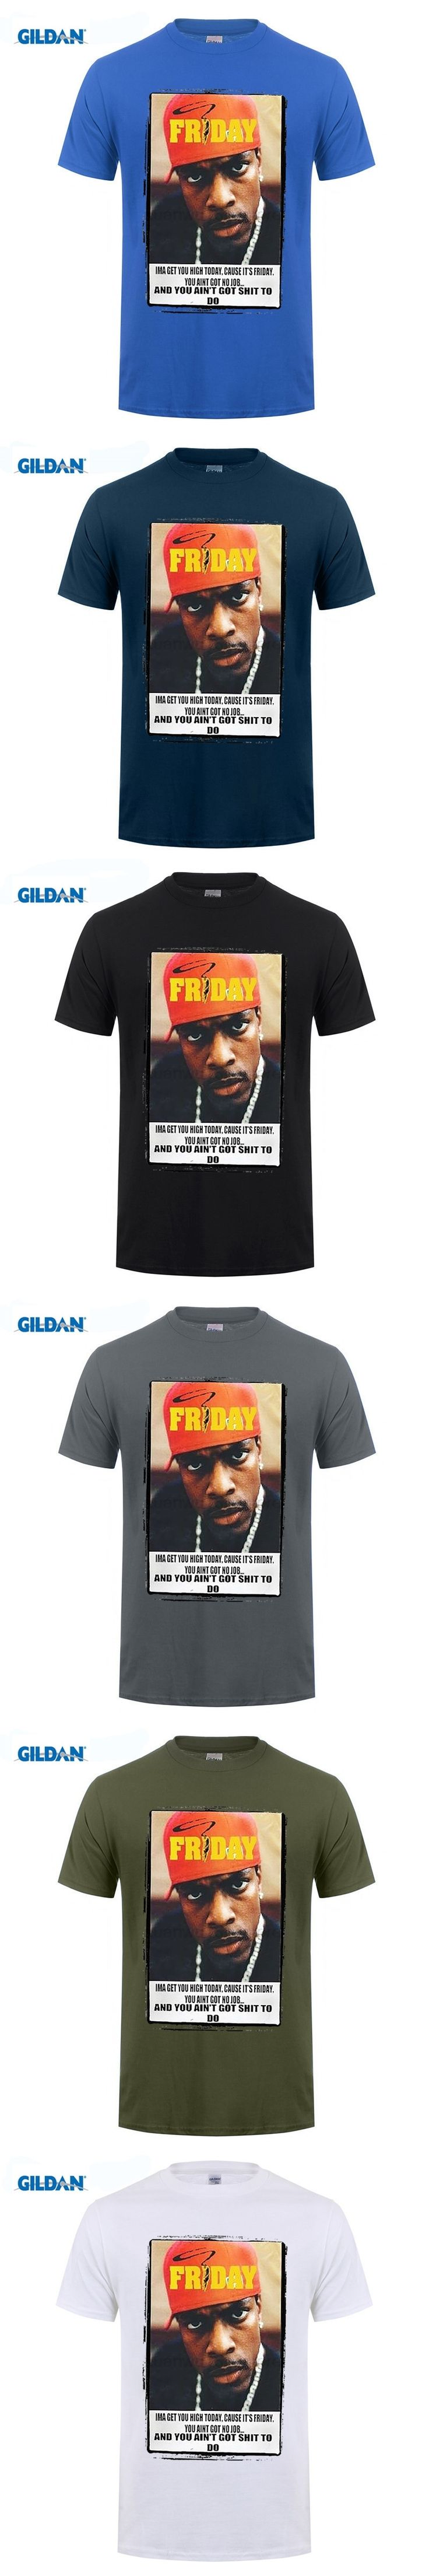 GILDAN Chris Tucker T-shirt, Ice Cube, Friday, Weed, California, Movie, New, LA, NY Cool Funny T Shirt Men High Quality Tees